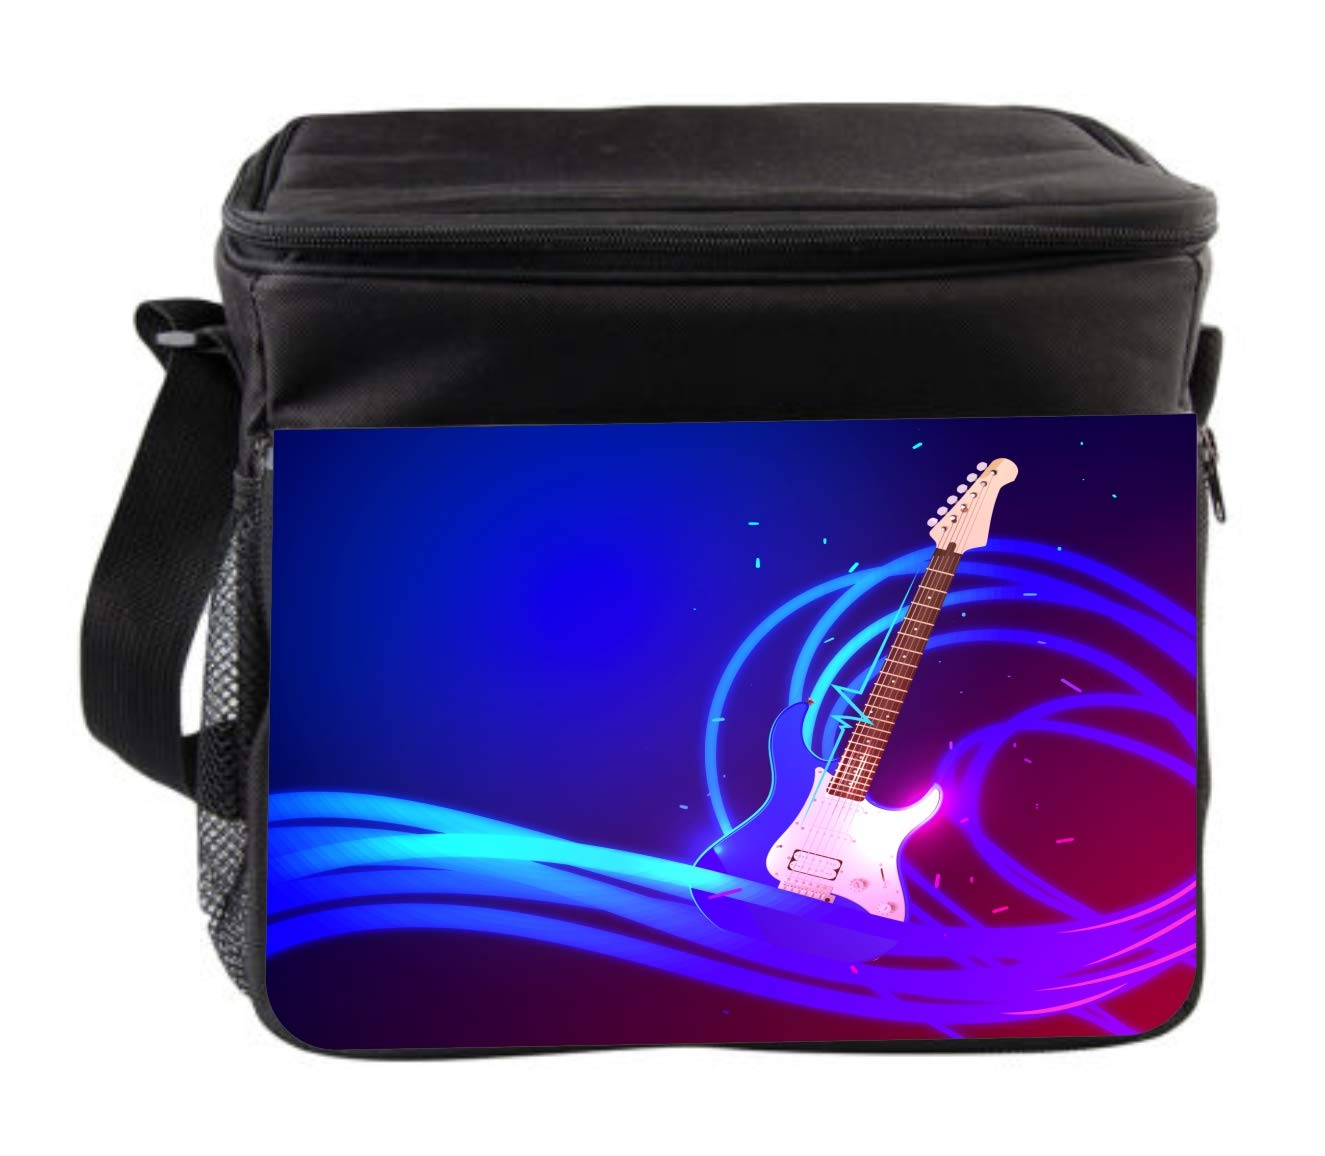 Rosie Parker Inc. Music Electrified Guitar Cross Body Thermal Cooler Bag for Travel by Rosie Parker Inc.